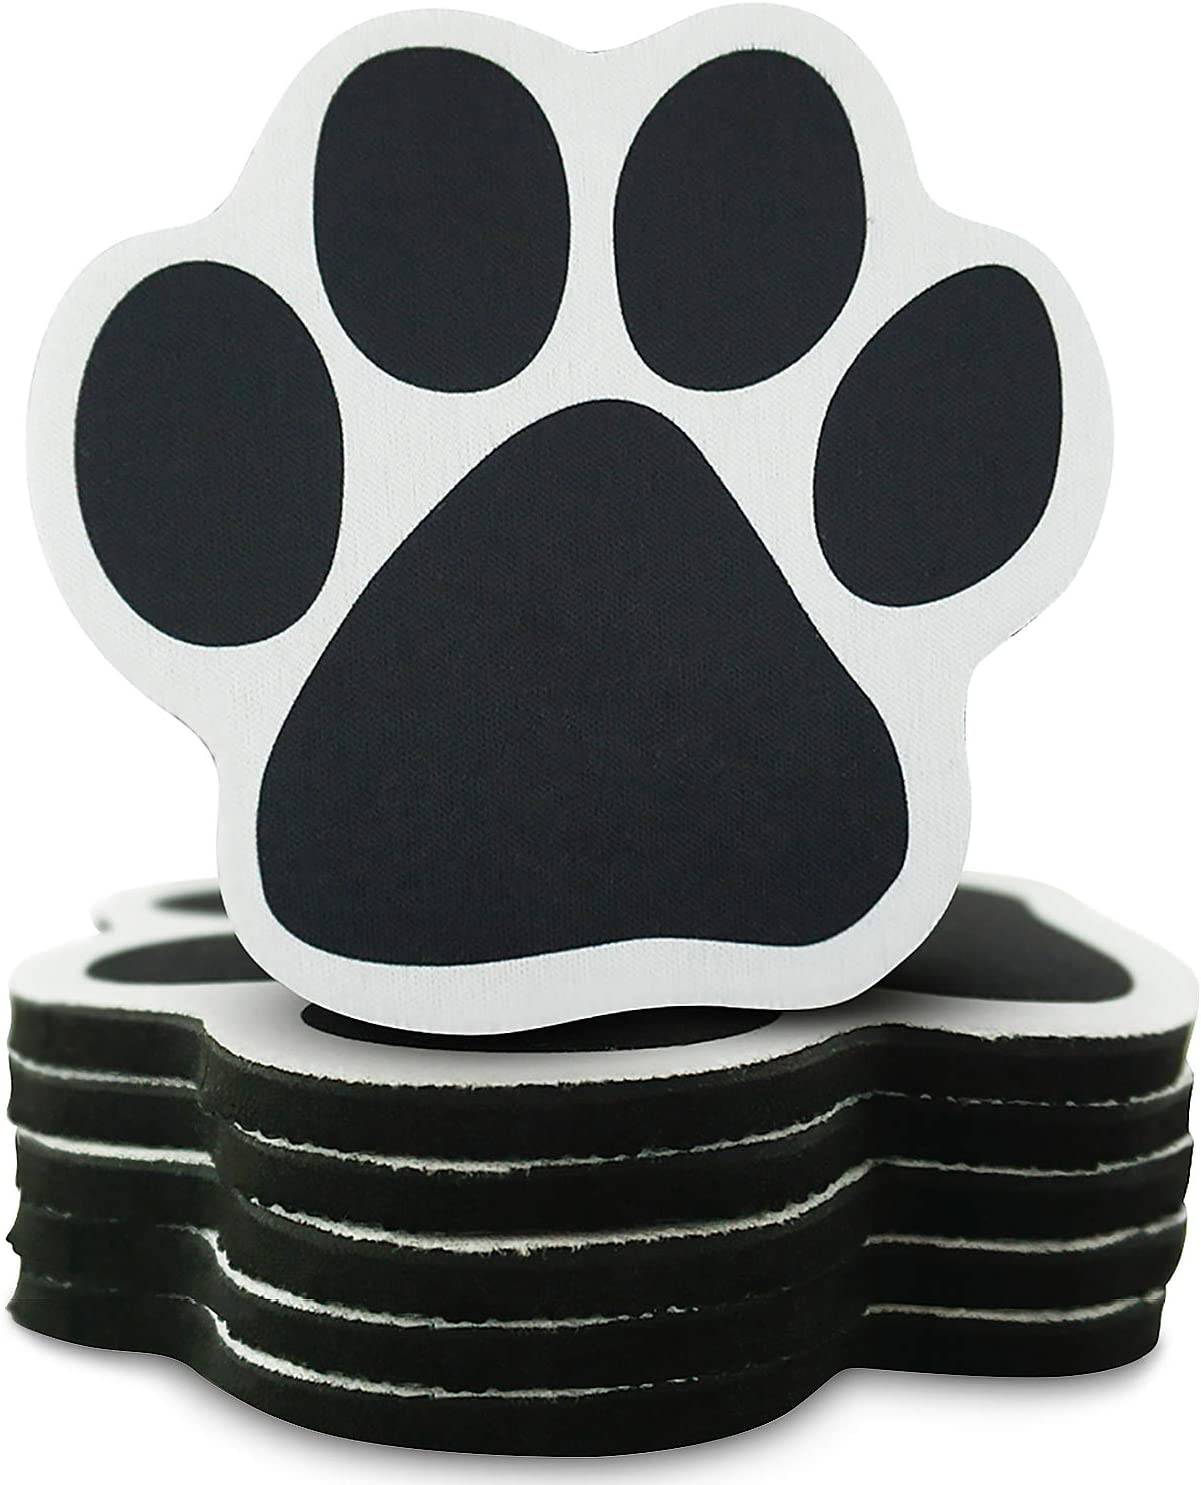 Pawtastic Padz Paw Shaped Absorbent Drink Coasters for Dog Lovers (Set of 6) - Soft, Non-Skid, Scratch Resistant Bottom - Indoor/Outdoor Use - Cute Dog Mom Gifts & Home Decor Table Gift Set